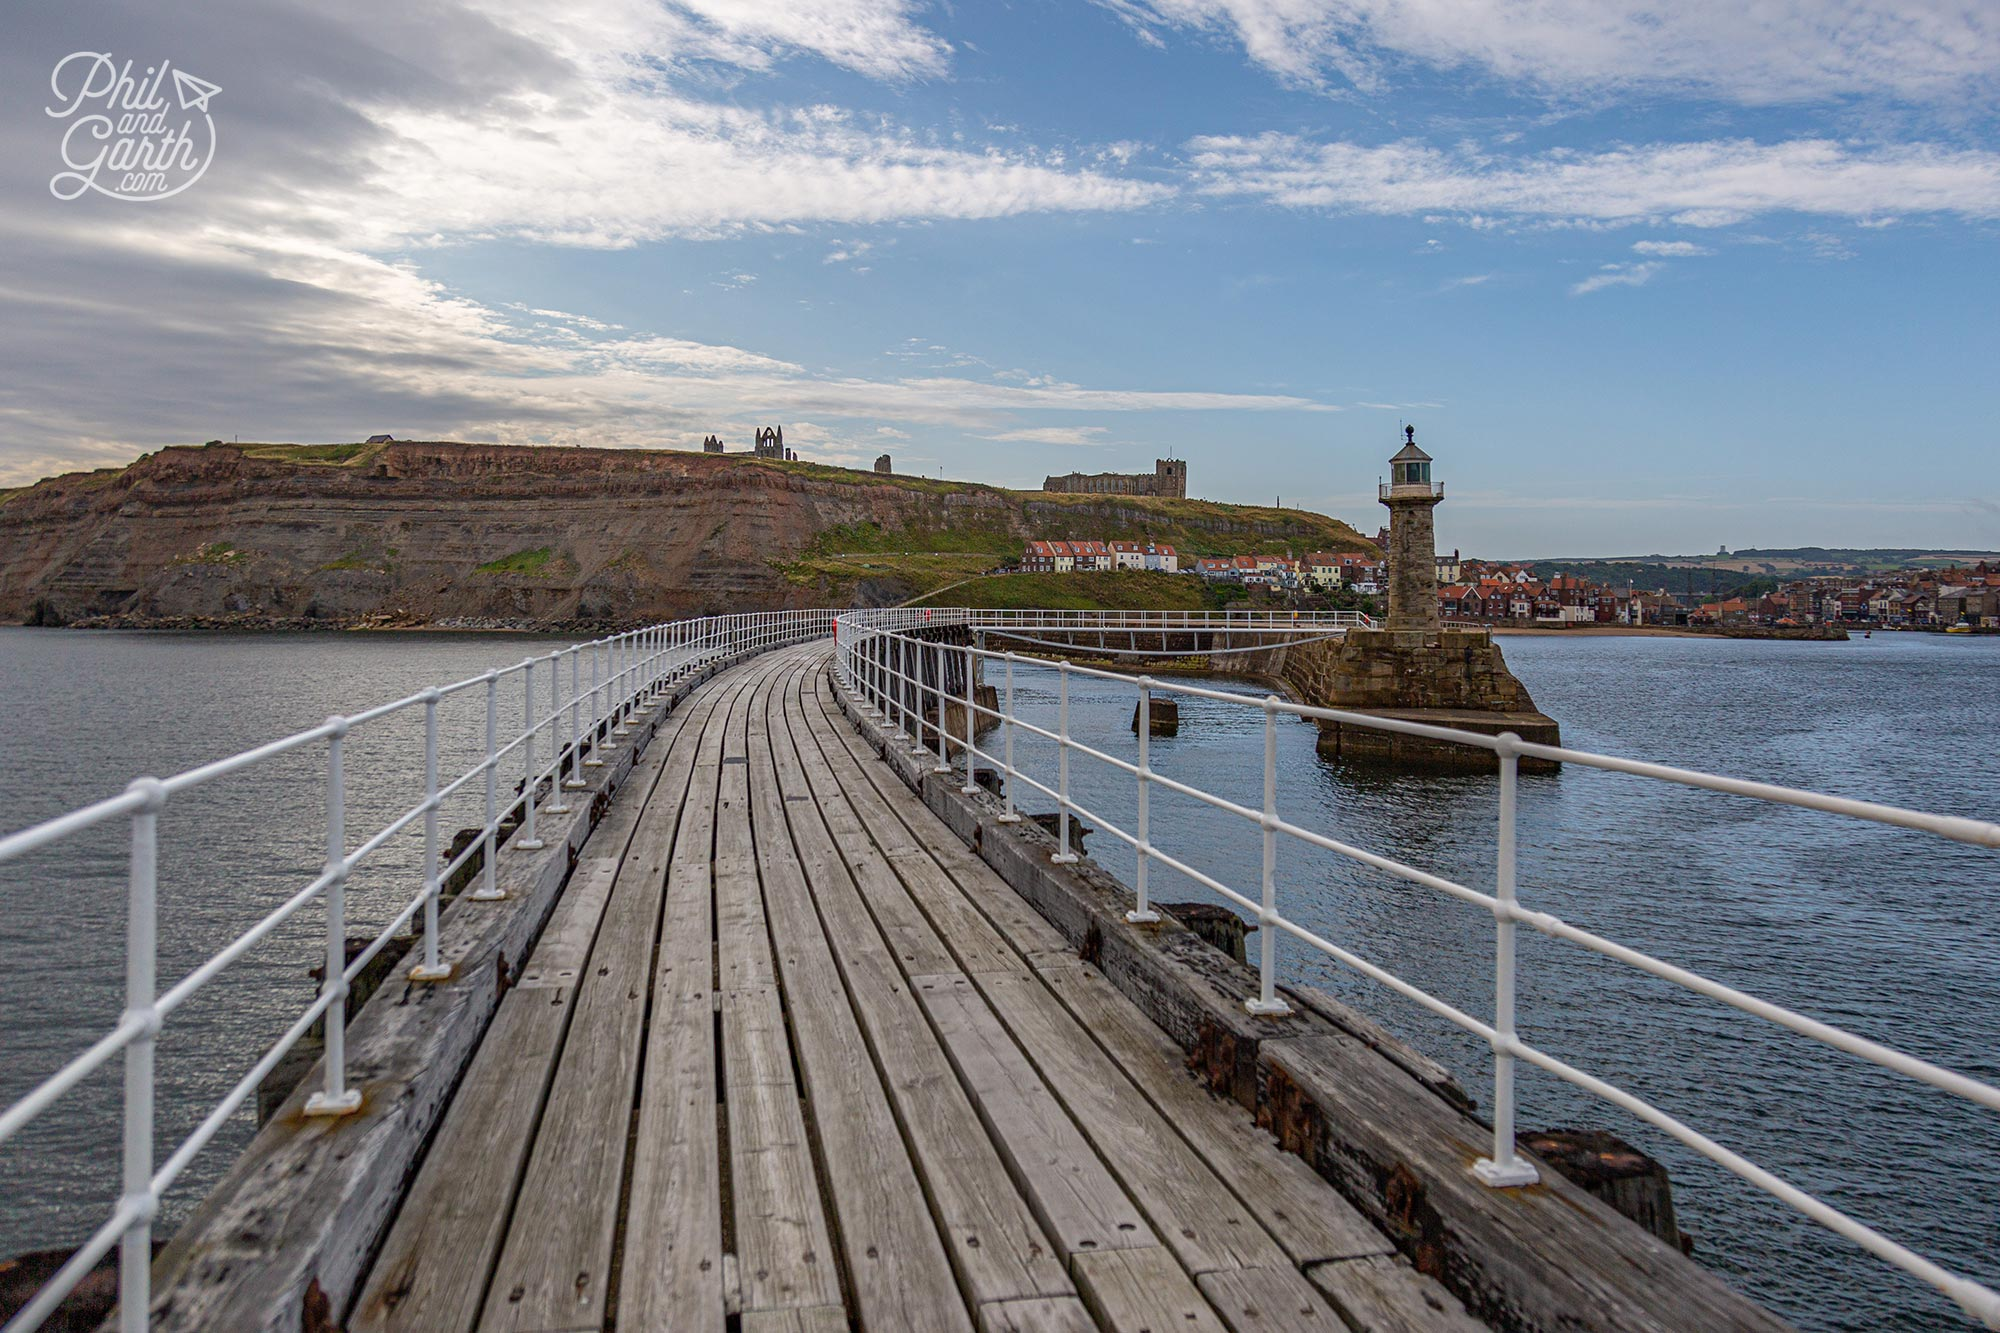 The view from Whitby's East Pier looking back to the harbour